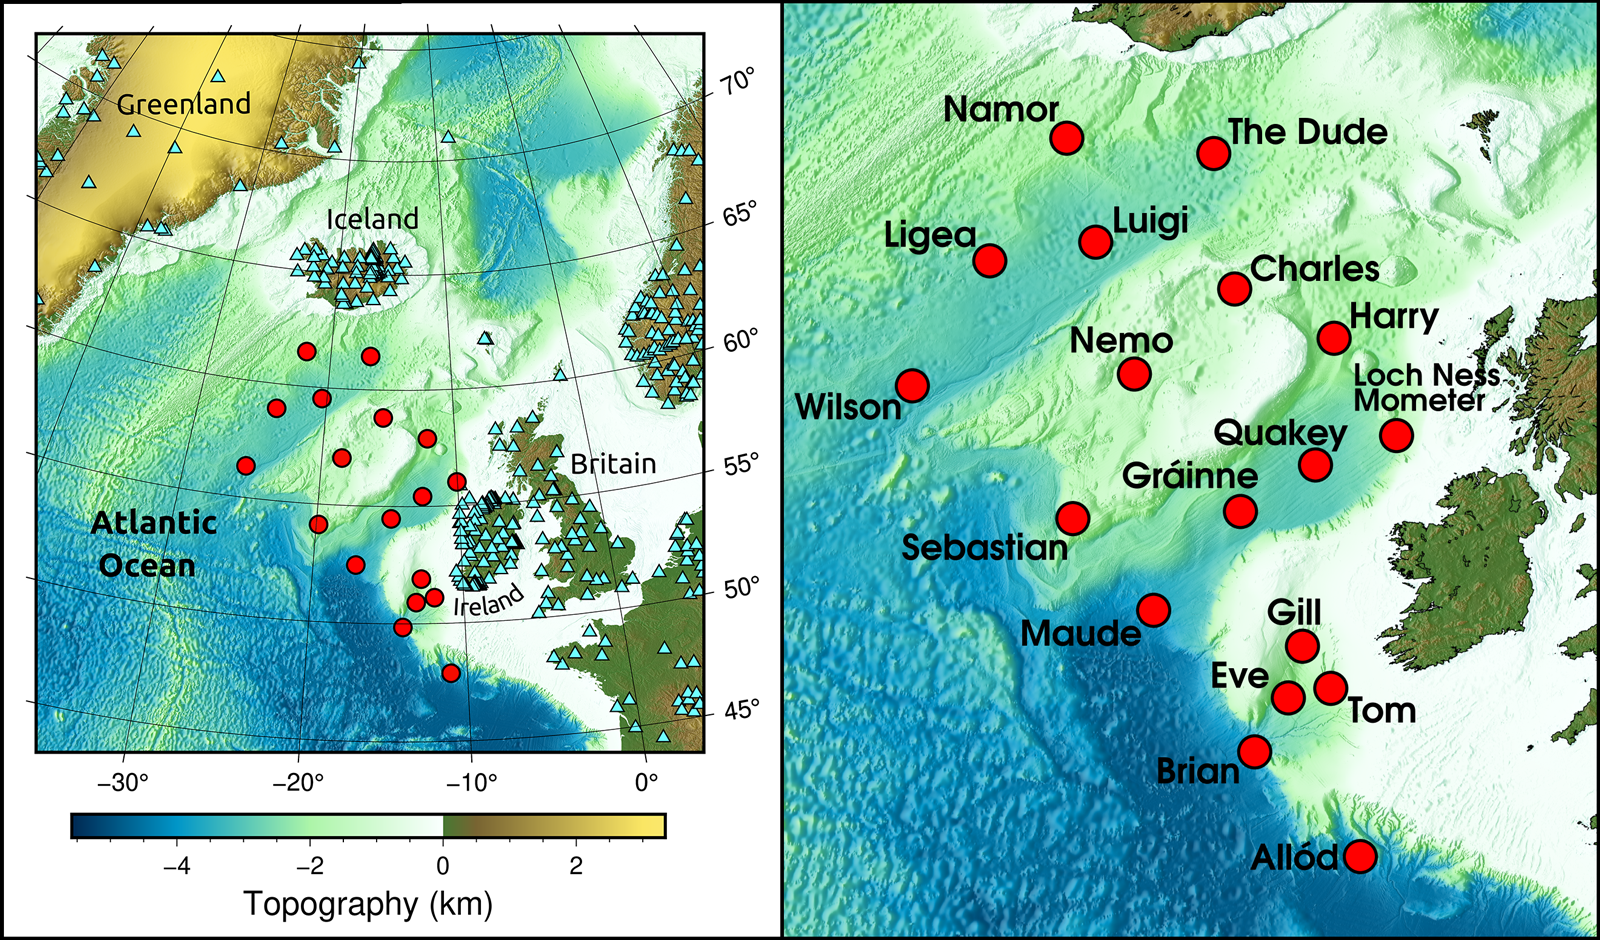 Maps of the North Atlantic showing the locations and names of ocean bottom seismic stations